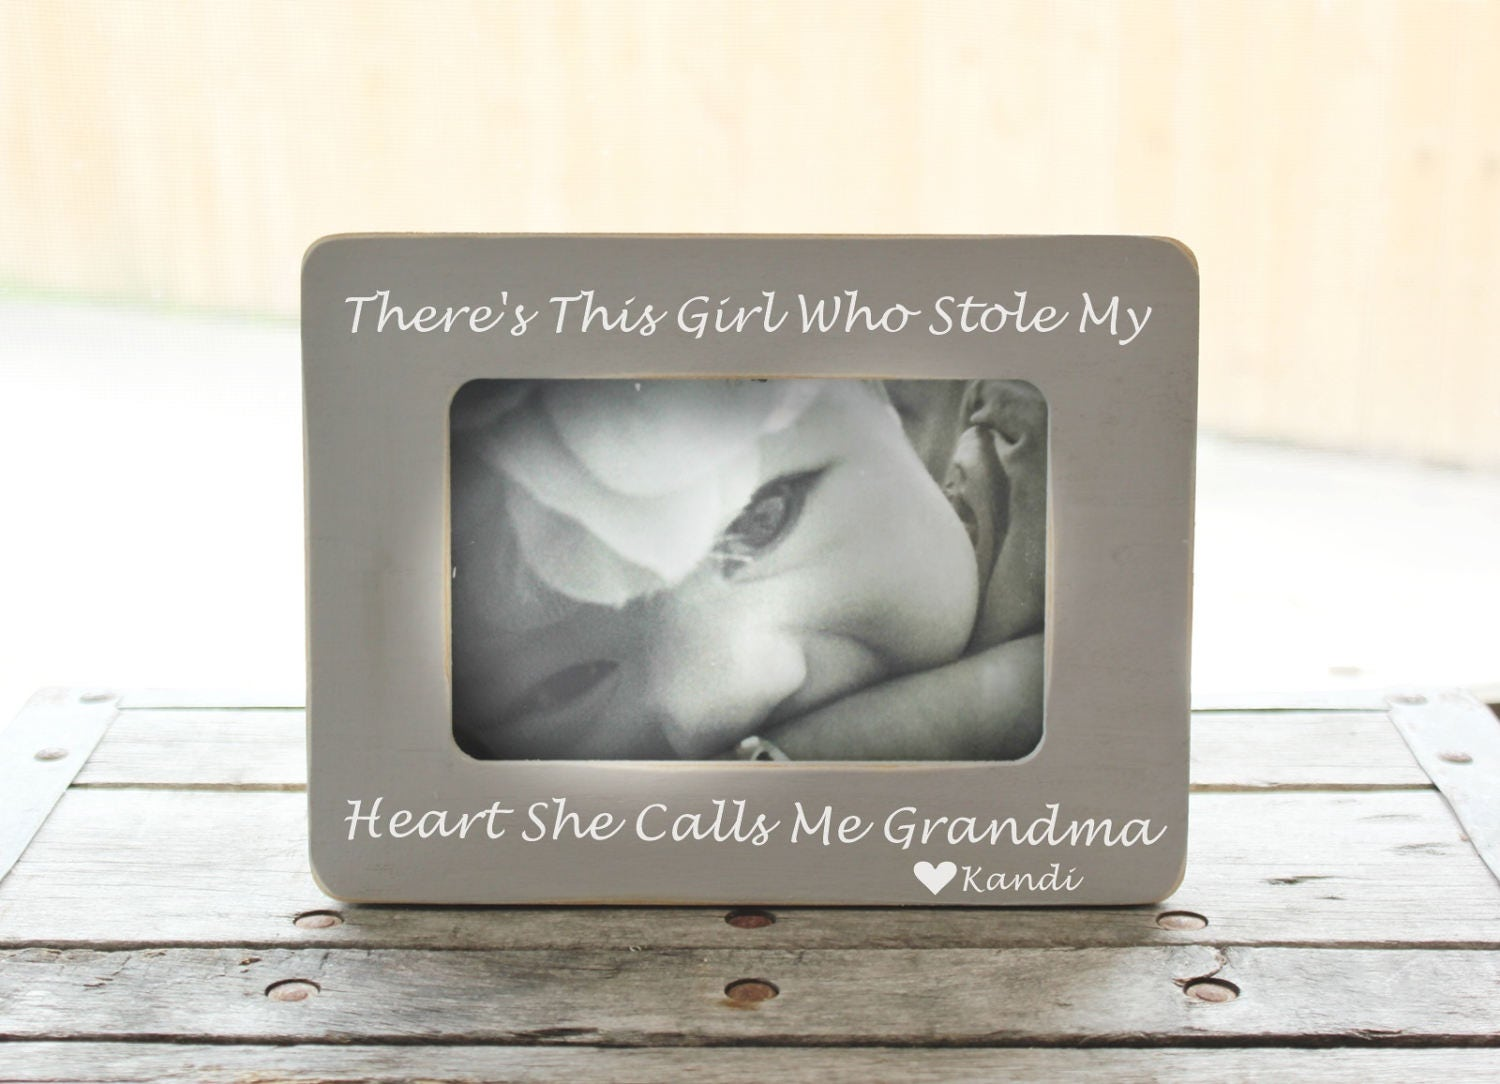 There's This Girl Who Stole My Heart She Calls Me Grandma